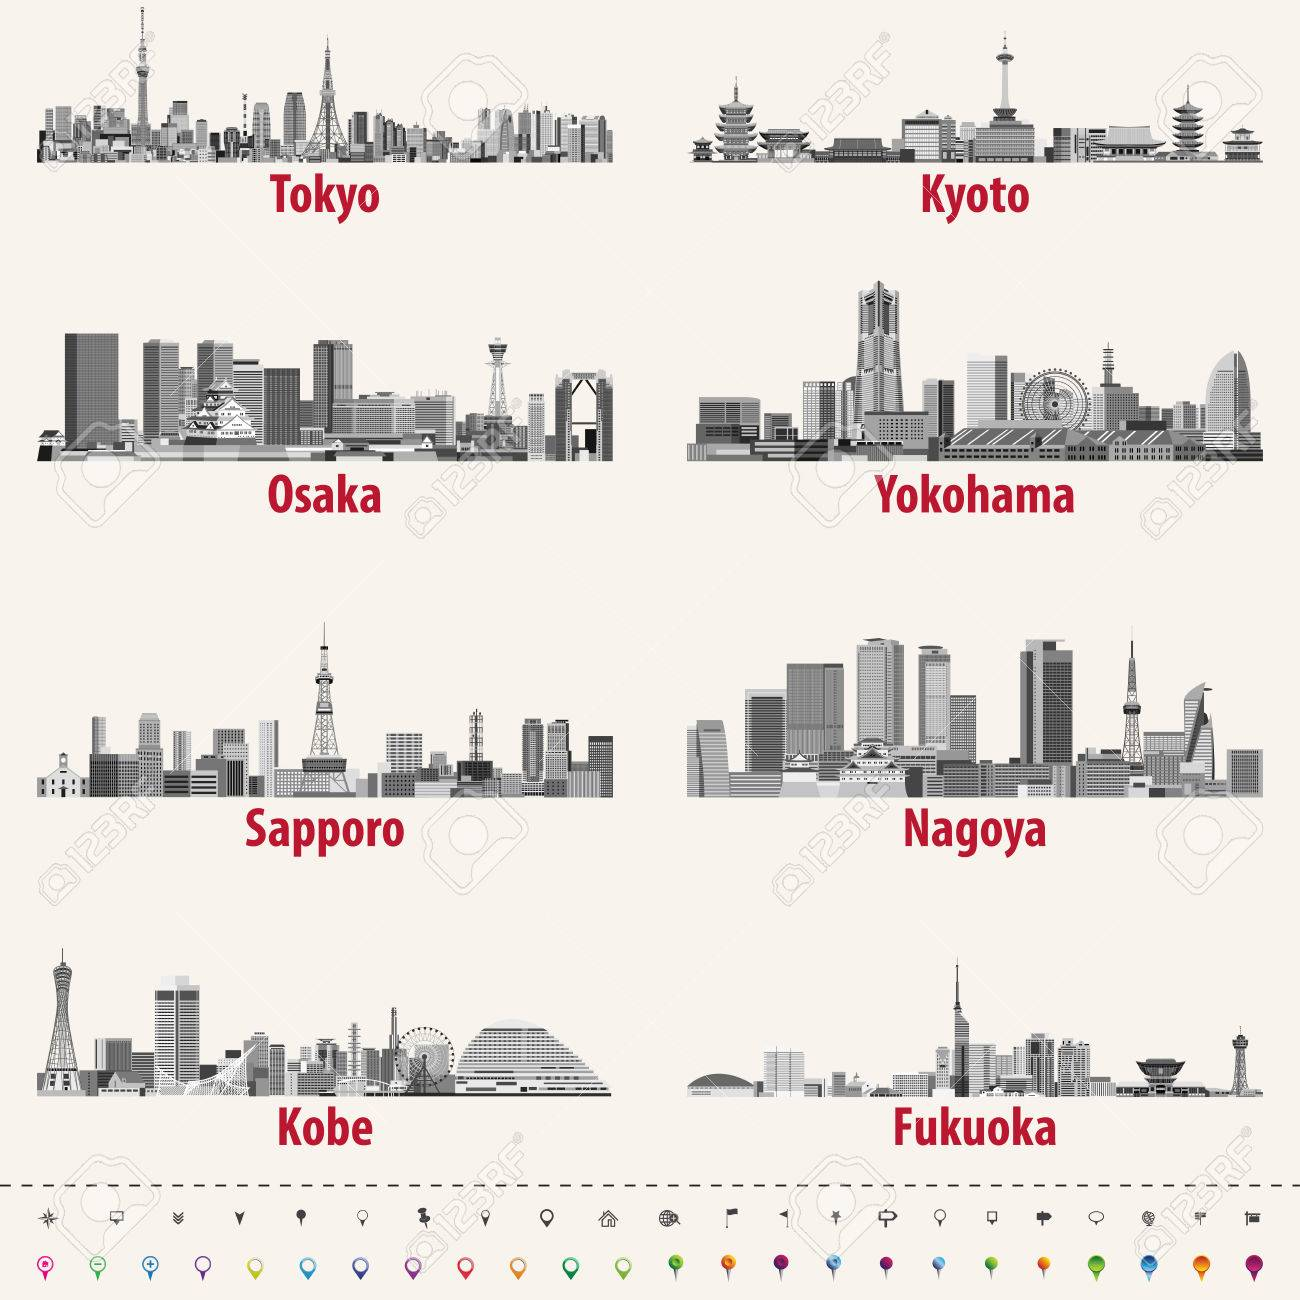 Abstract vector illustration of japanese city skylines - 83882961